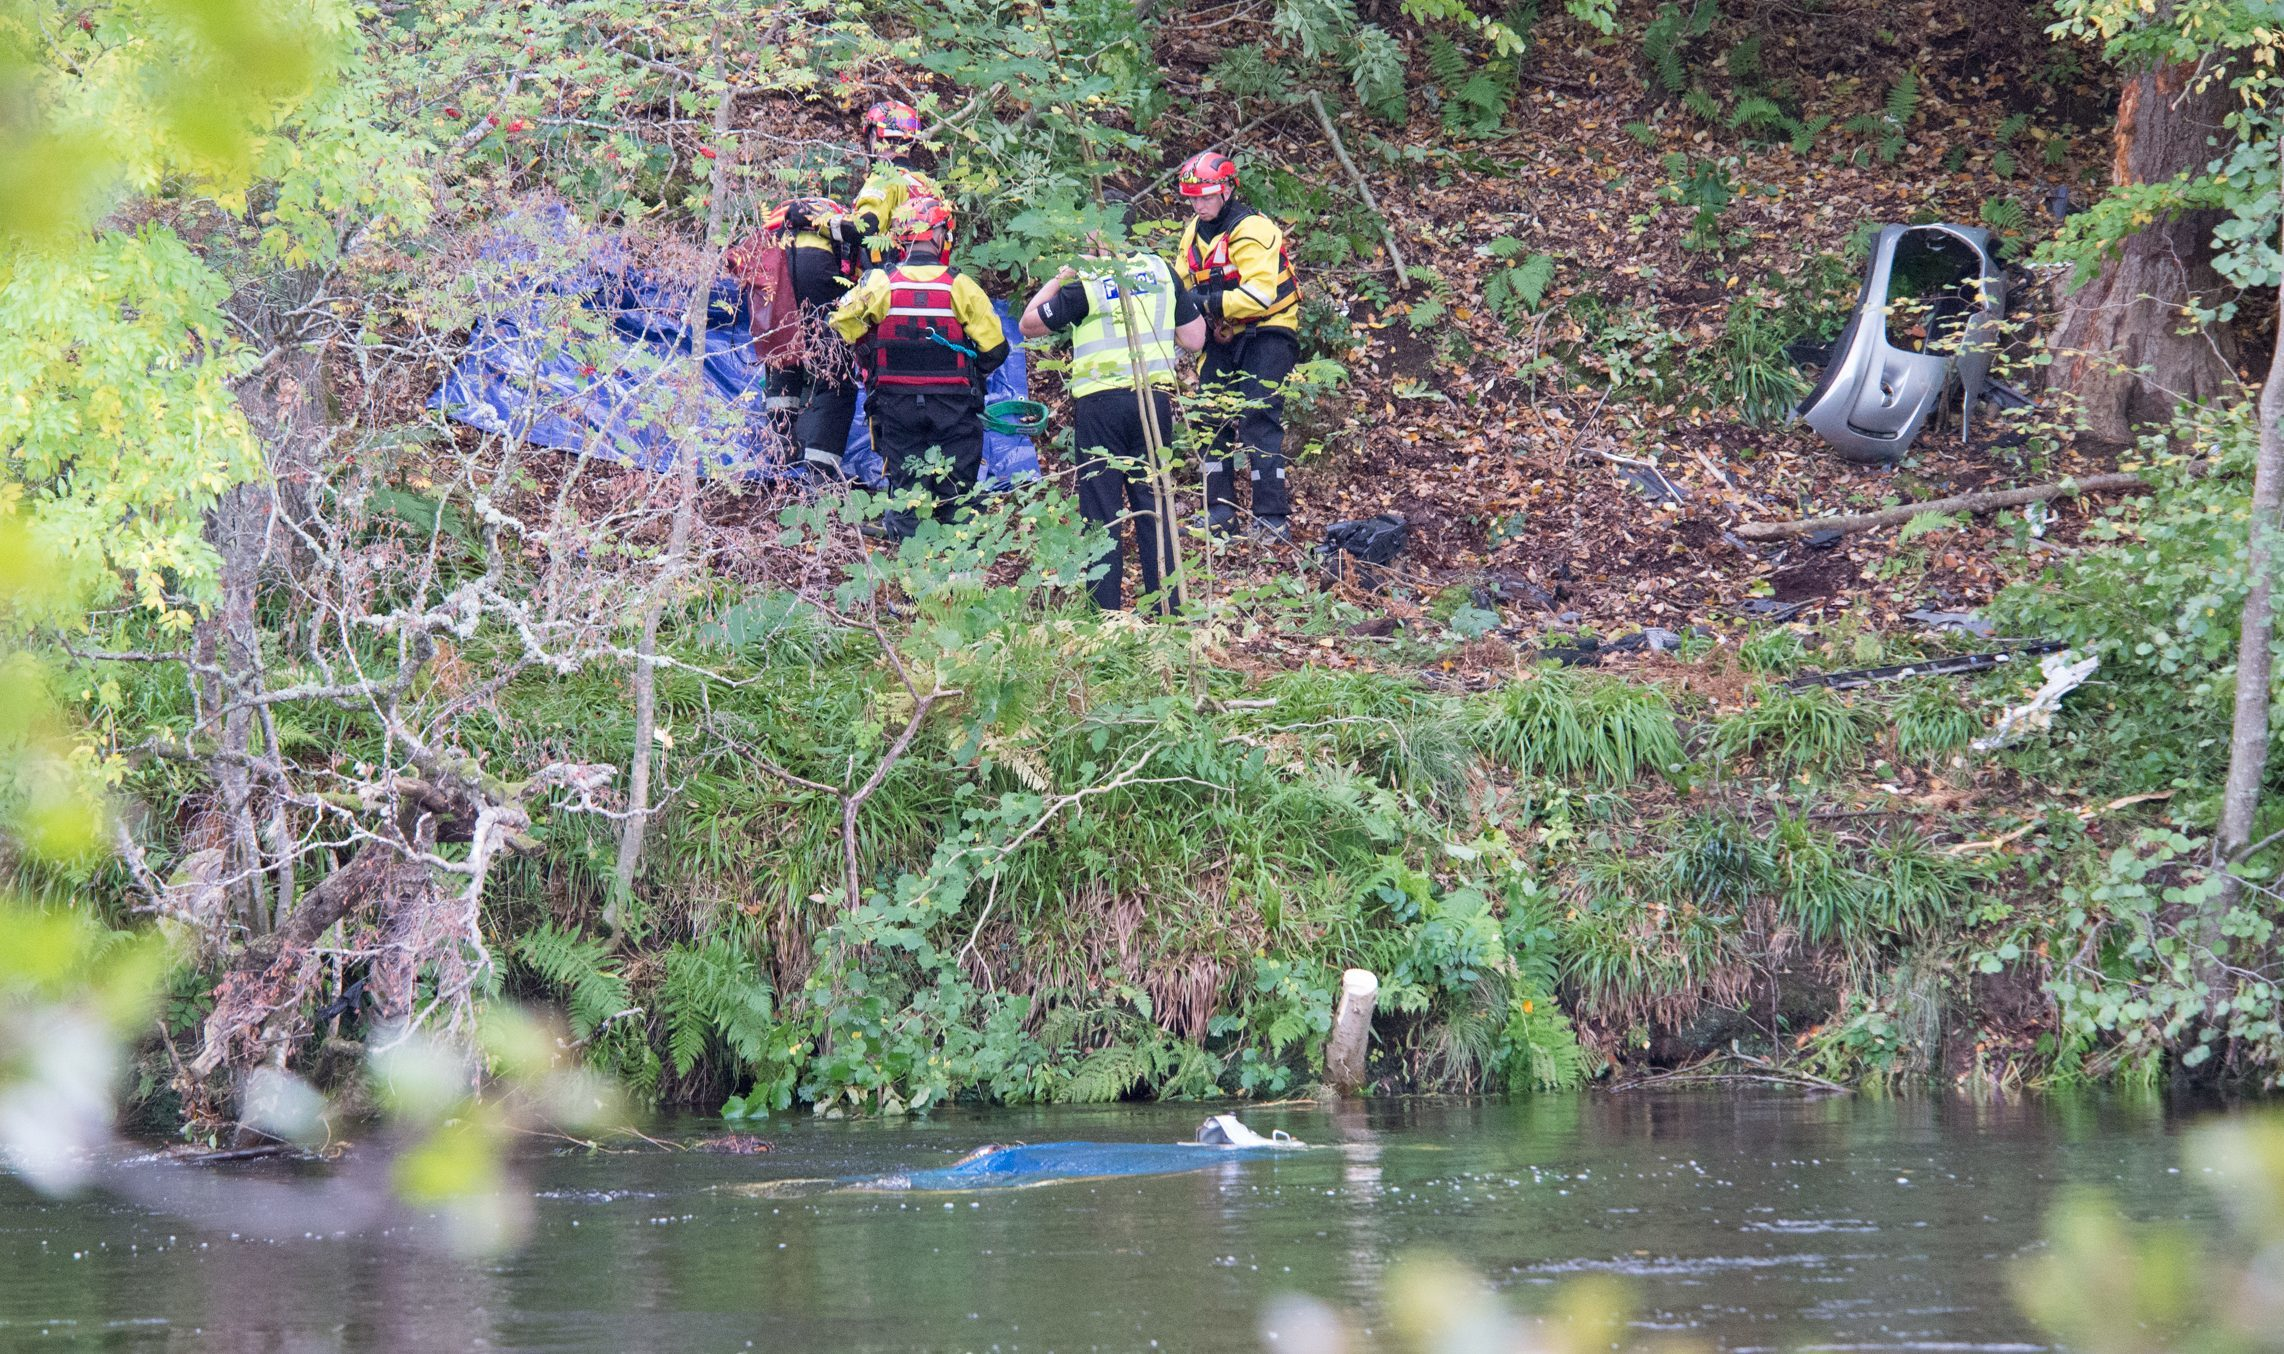 Emergency services at the River Tay after being alerted to a car in the water just west of Aberfeldy.